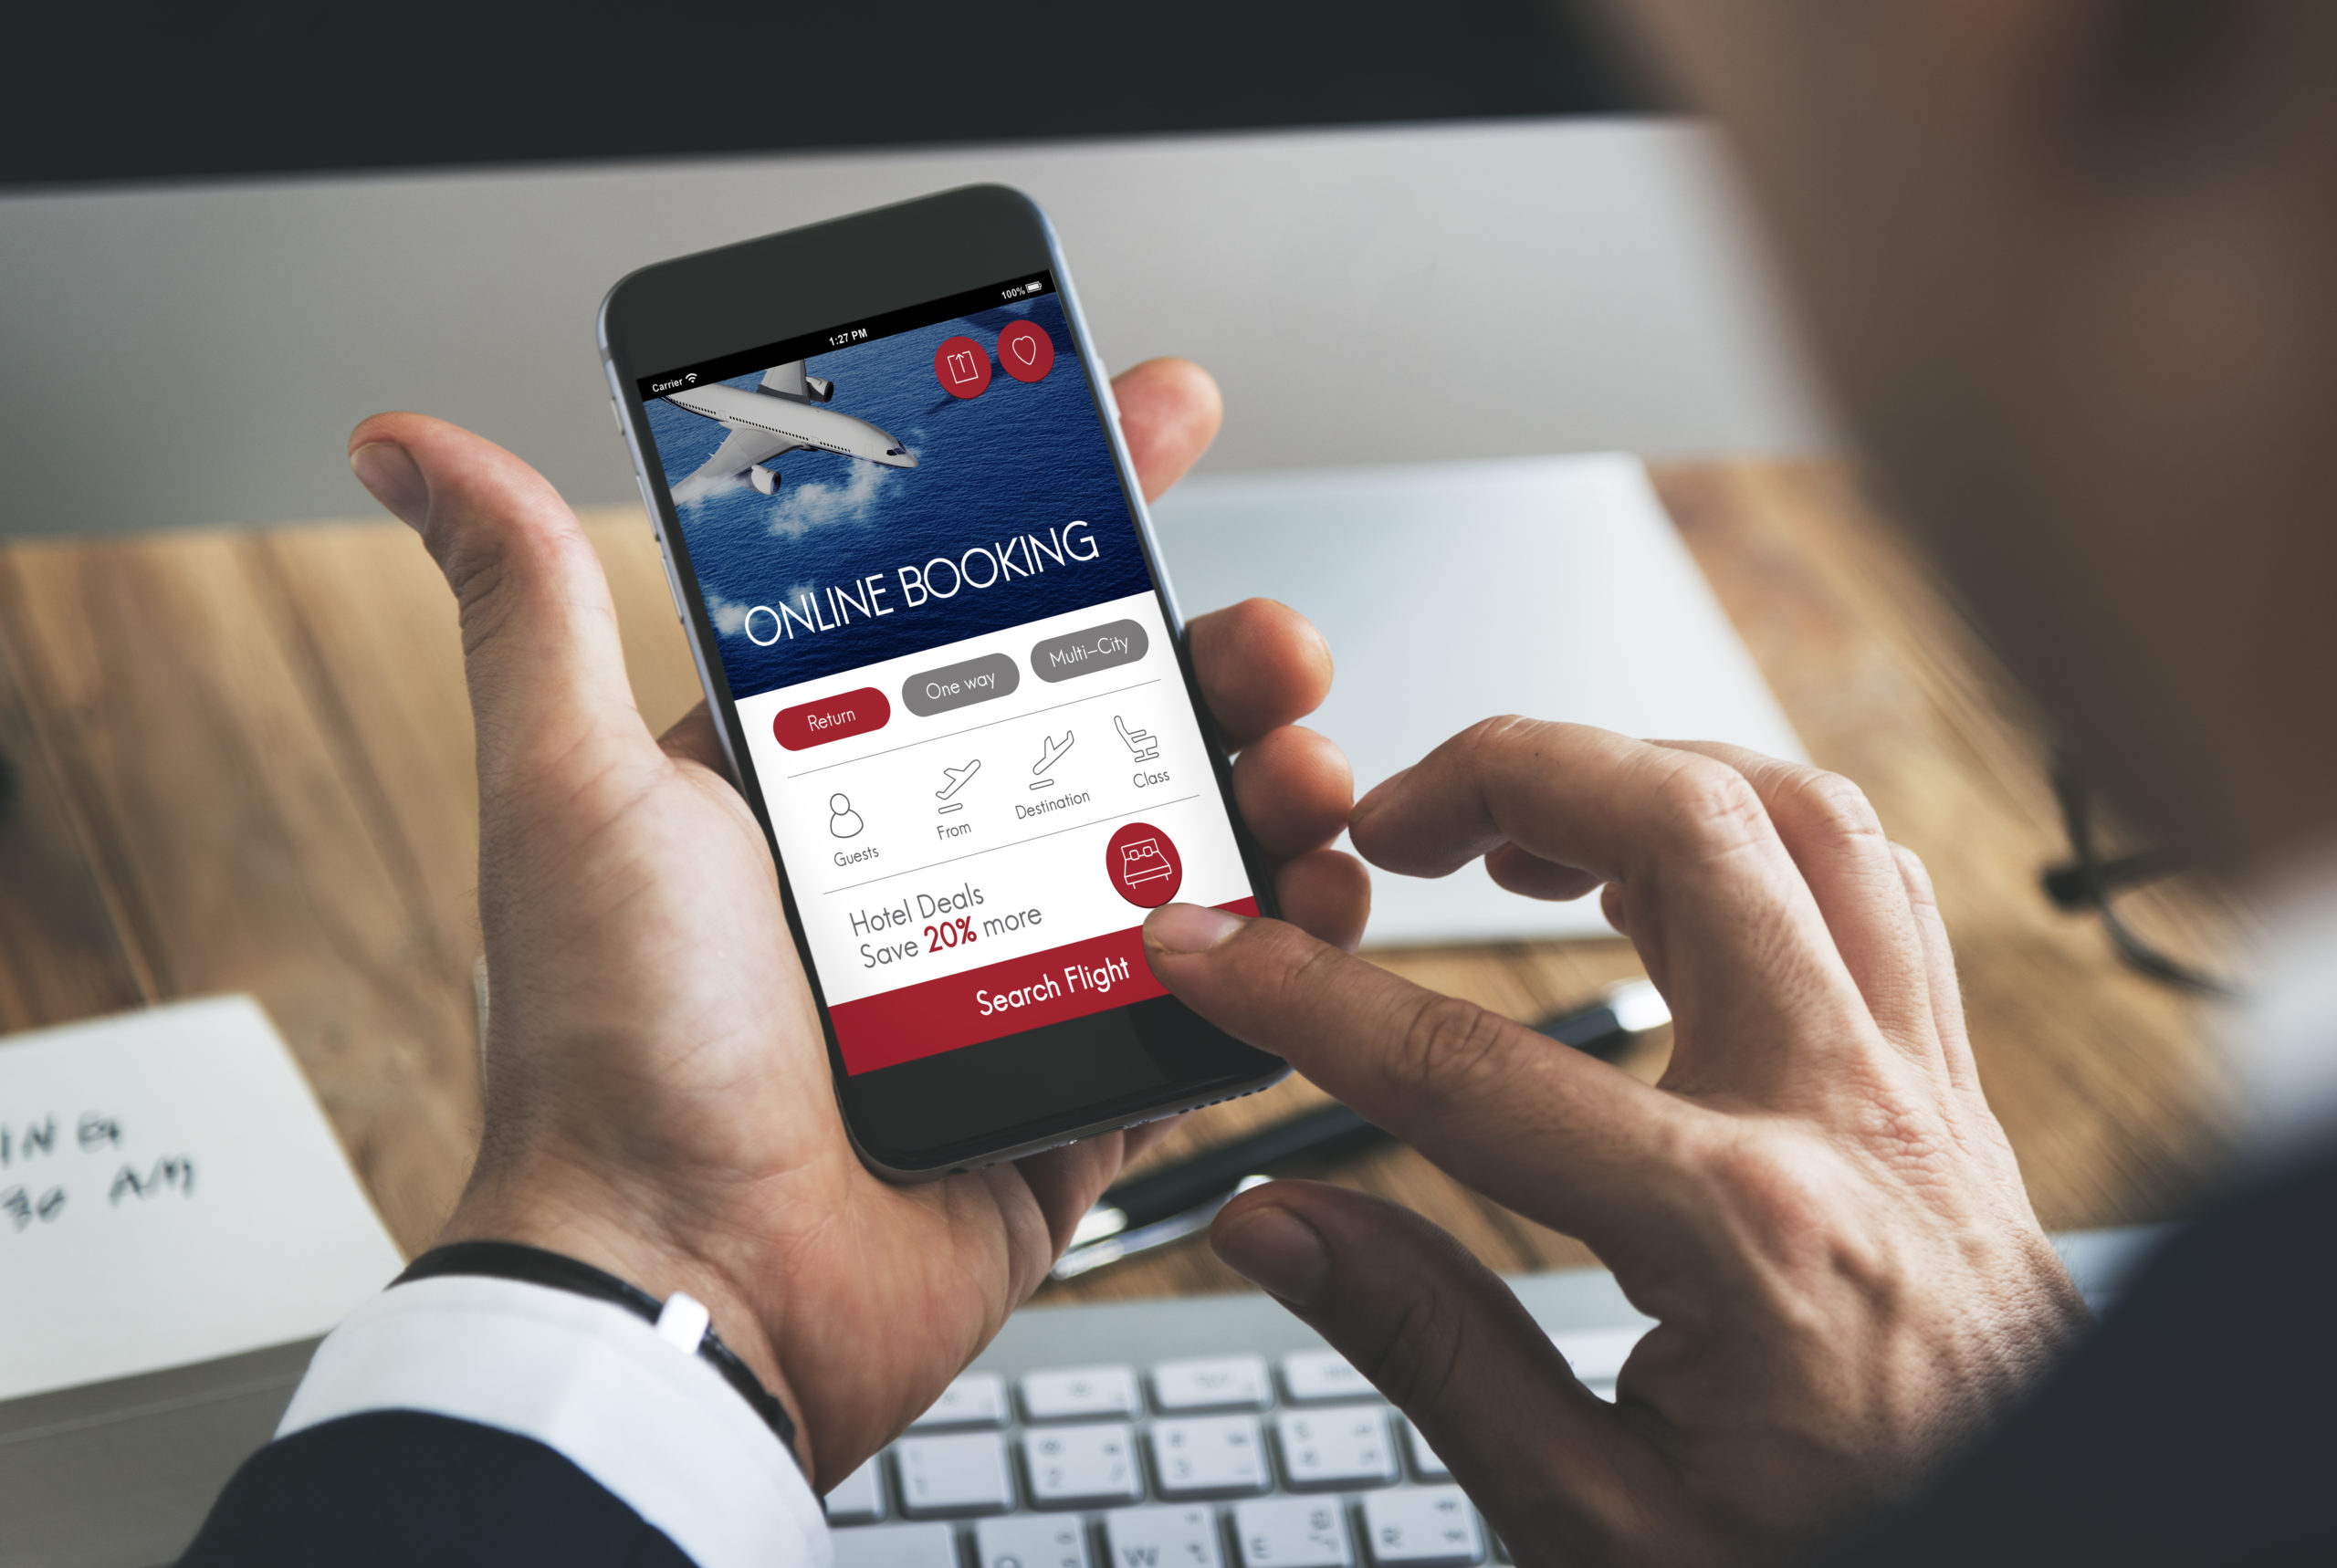 Top 5 Things to Know About Private Aviation Apps